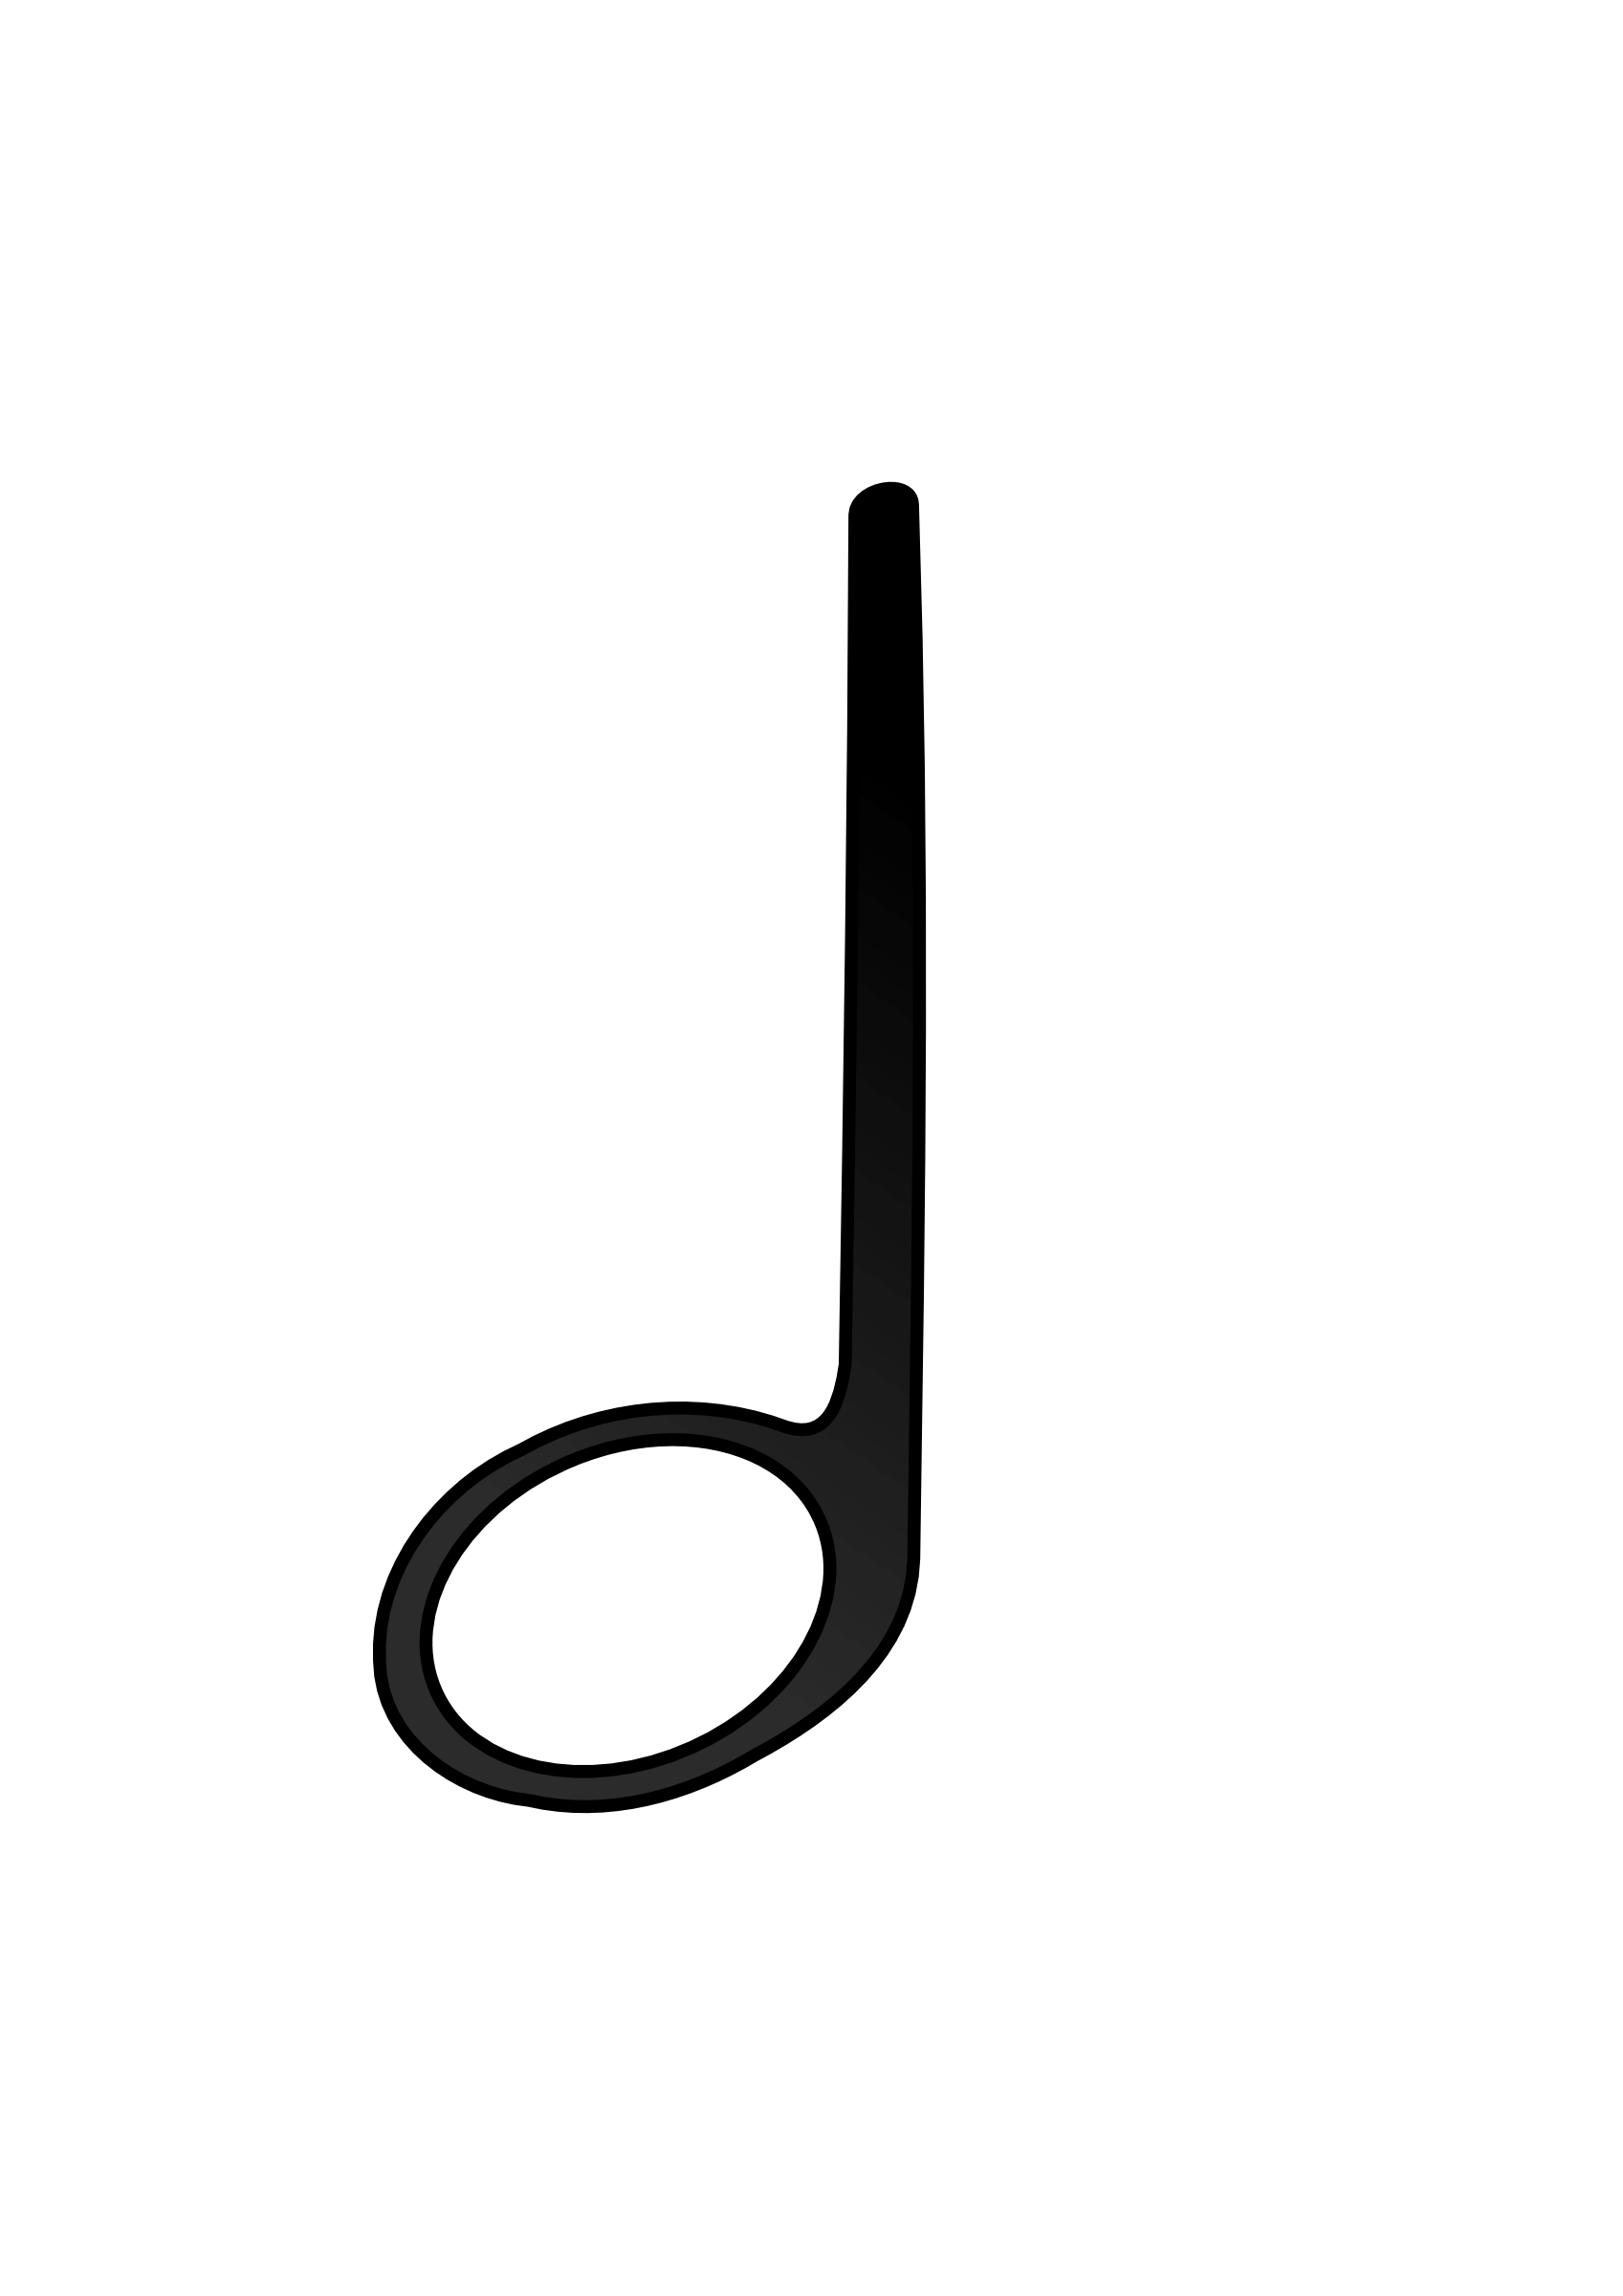 Dotted quarter note png. Half musical stem clip